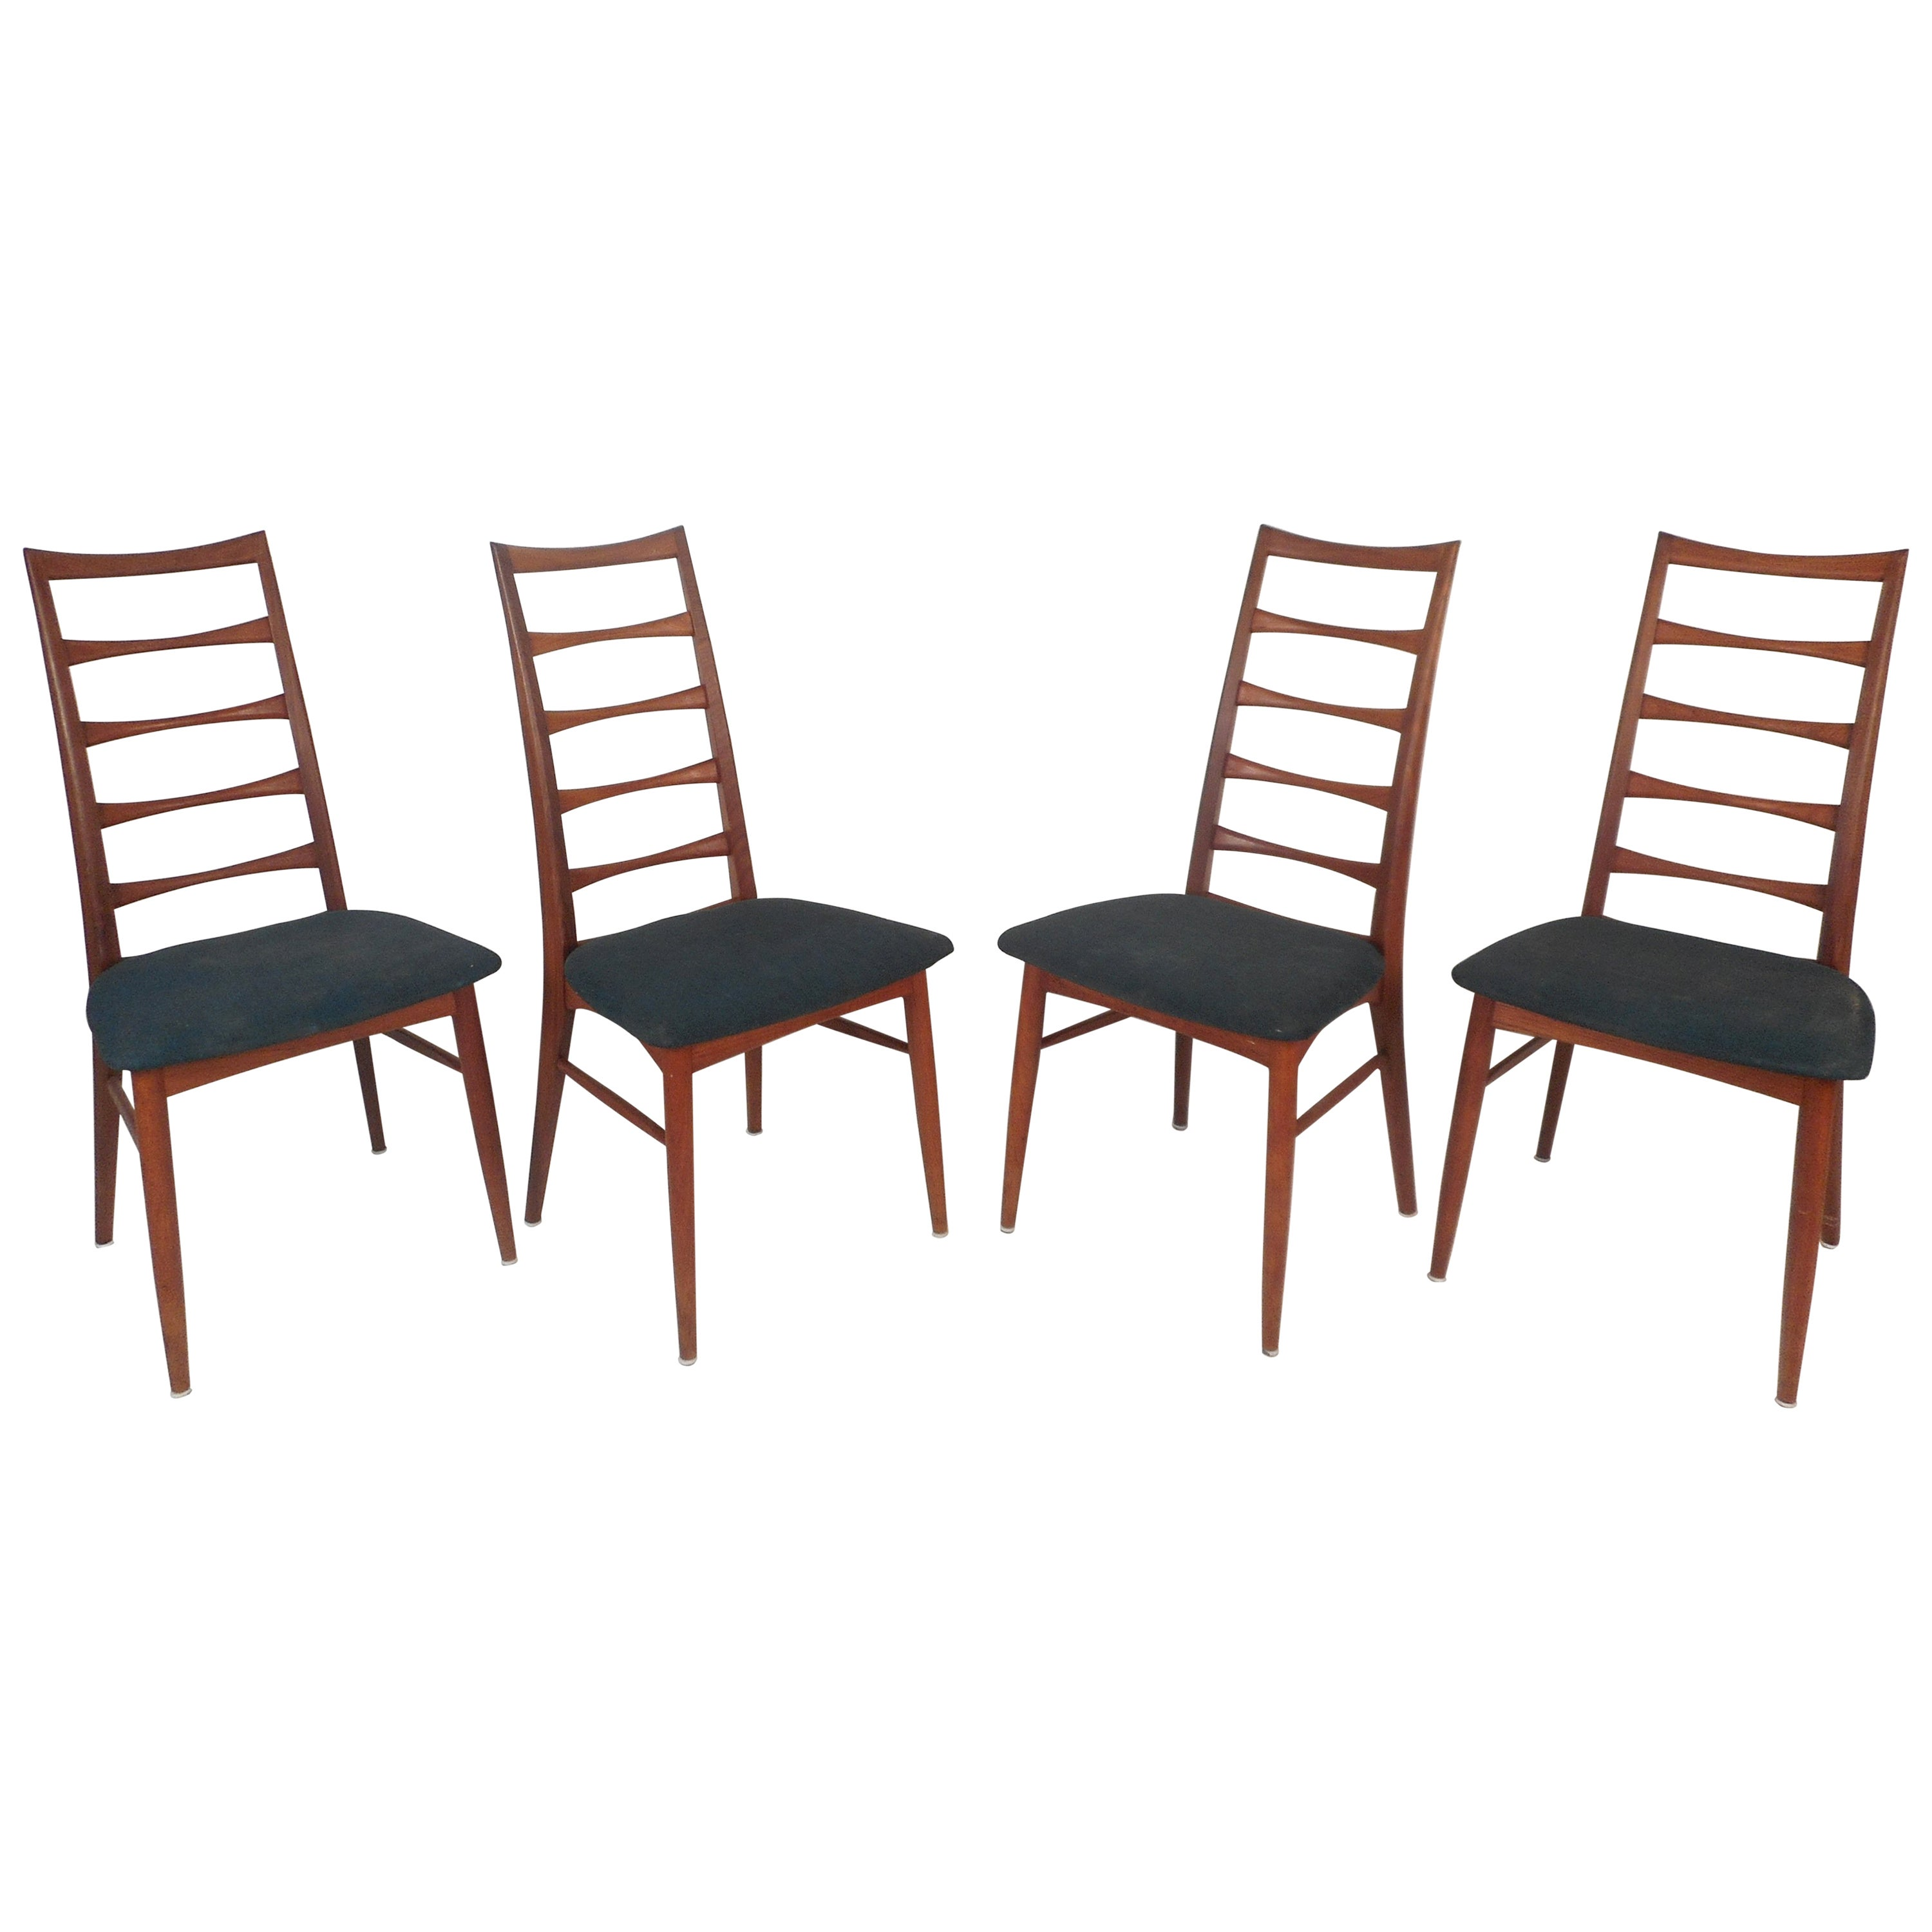 Set of Four Mid-Century Modern Ladder Back Dining Chairs by Niels Kofoed